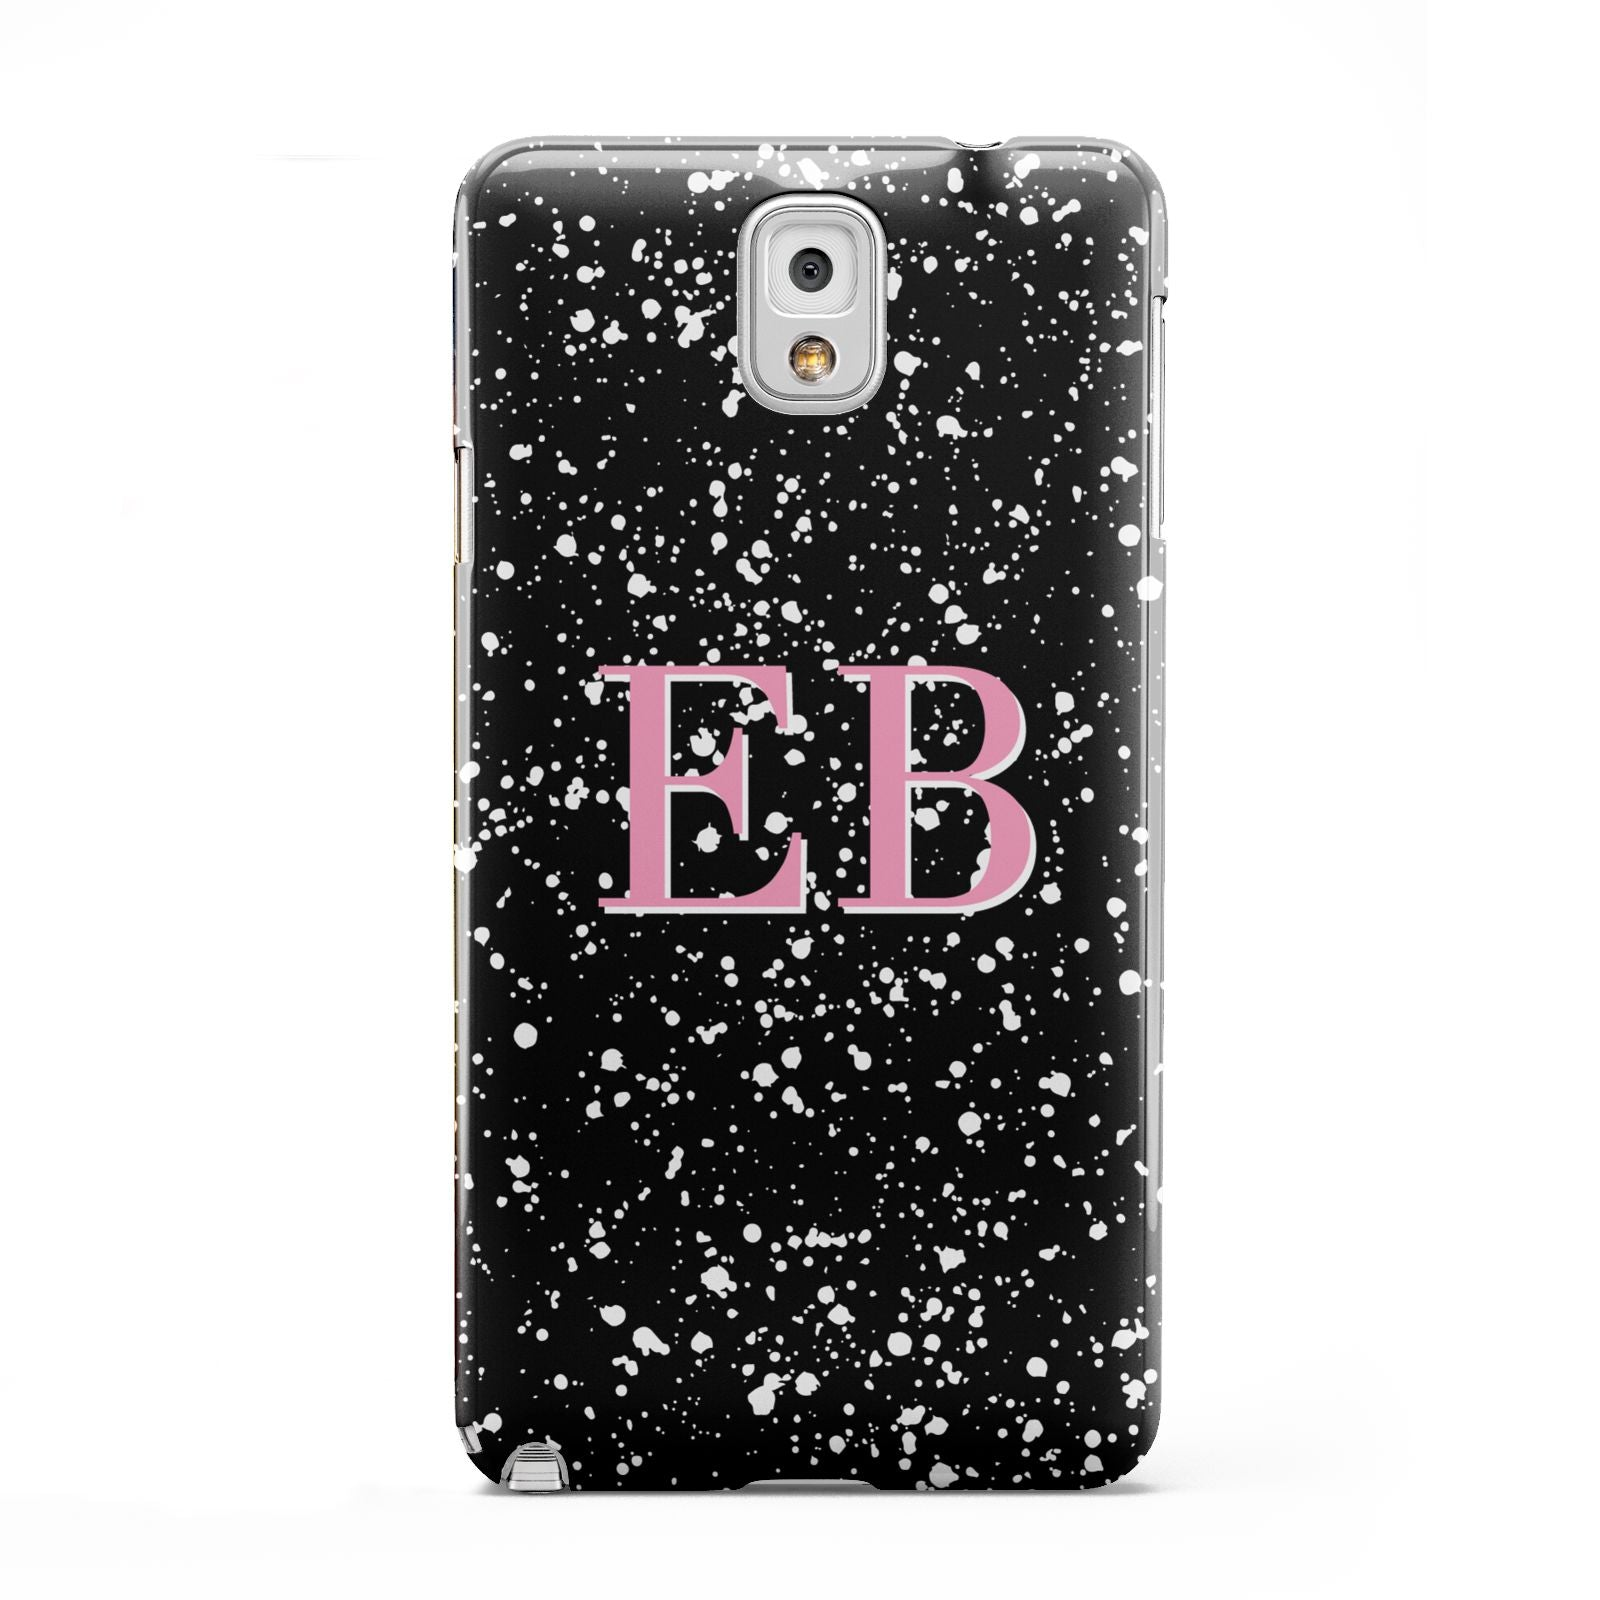 Personalised Black Ink Splat Initials Samsung Galaxy Note 3 Case